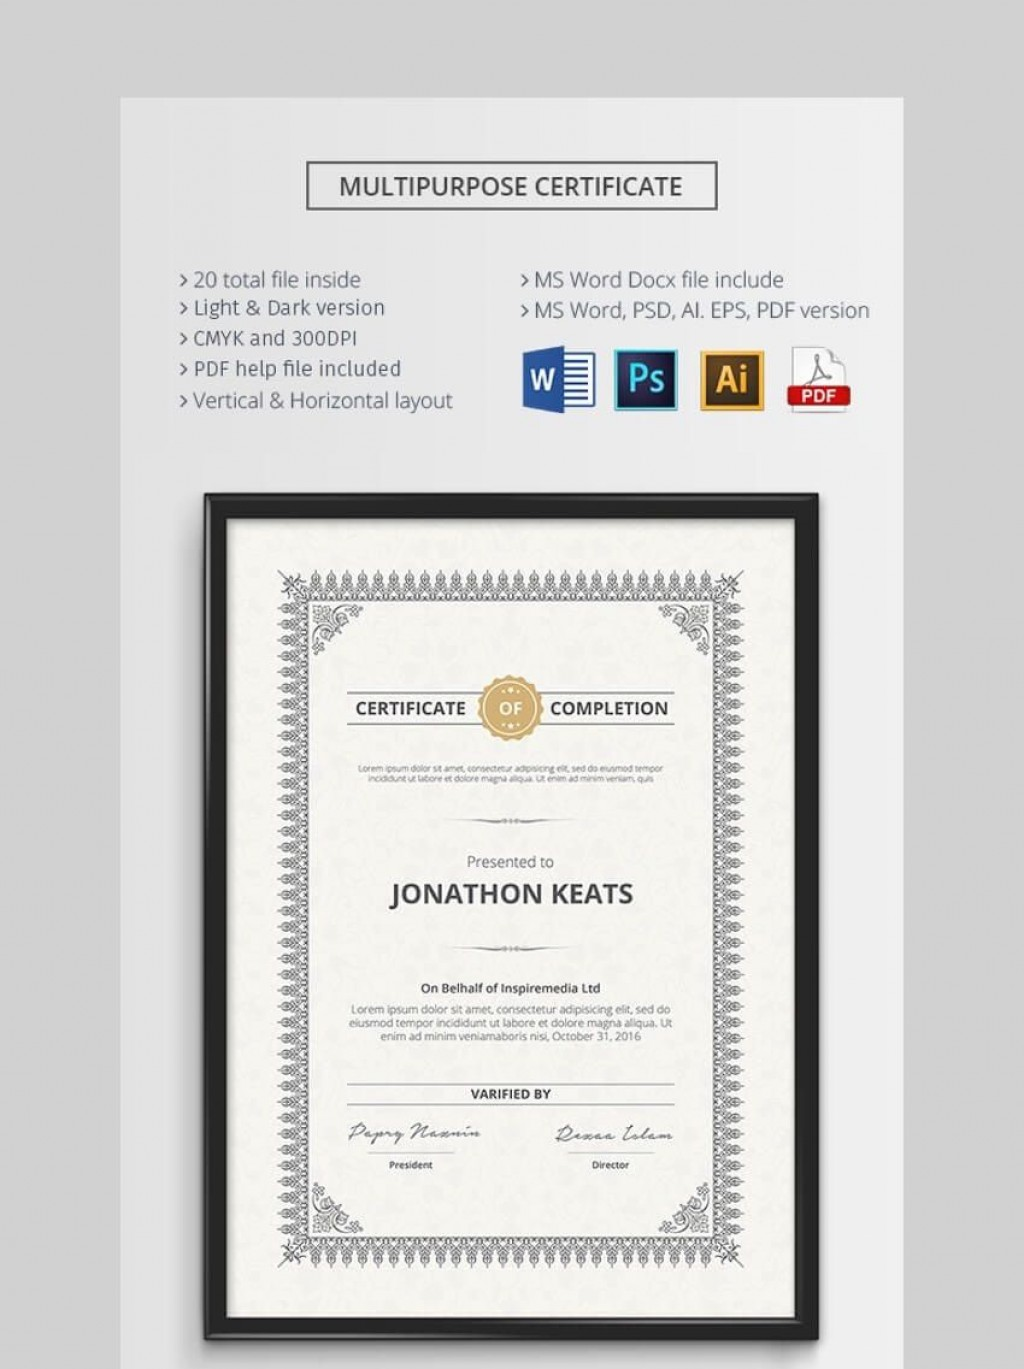 000 Top Free Certificate Template Microsoft Word Image  Of Authenticity Art Puppy Birth MarriageLarge